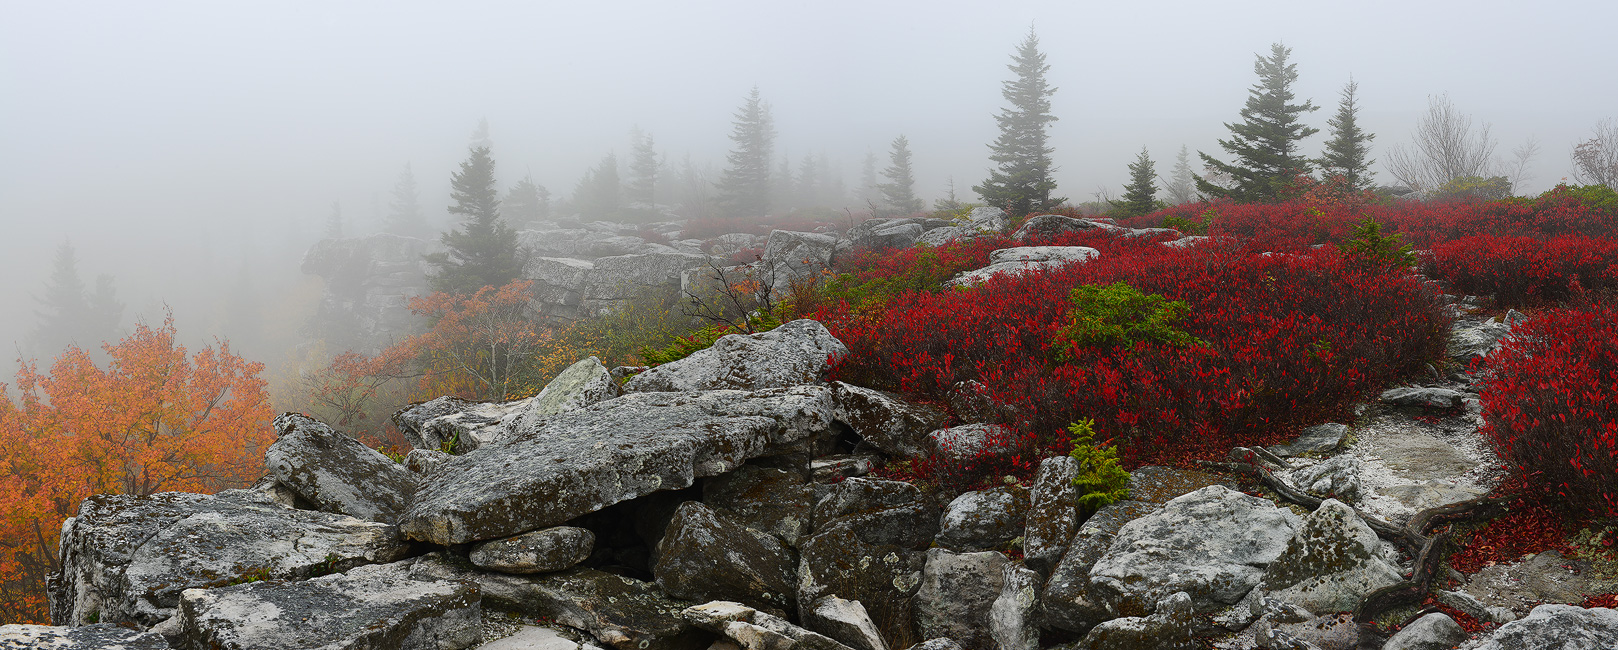 Please Let Me Be, Dolly Sods, West Virginia, Bear Rocks Preserve, autumn, fall, colors, panoramic, crimson red, rock, fog, mist, morning, bernard chen, timescapes, photo